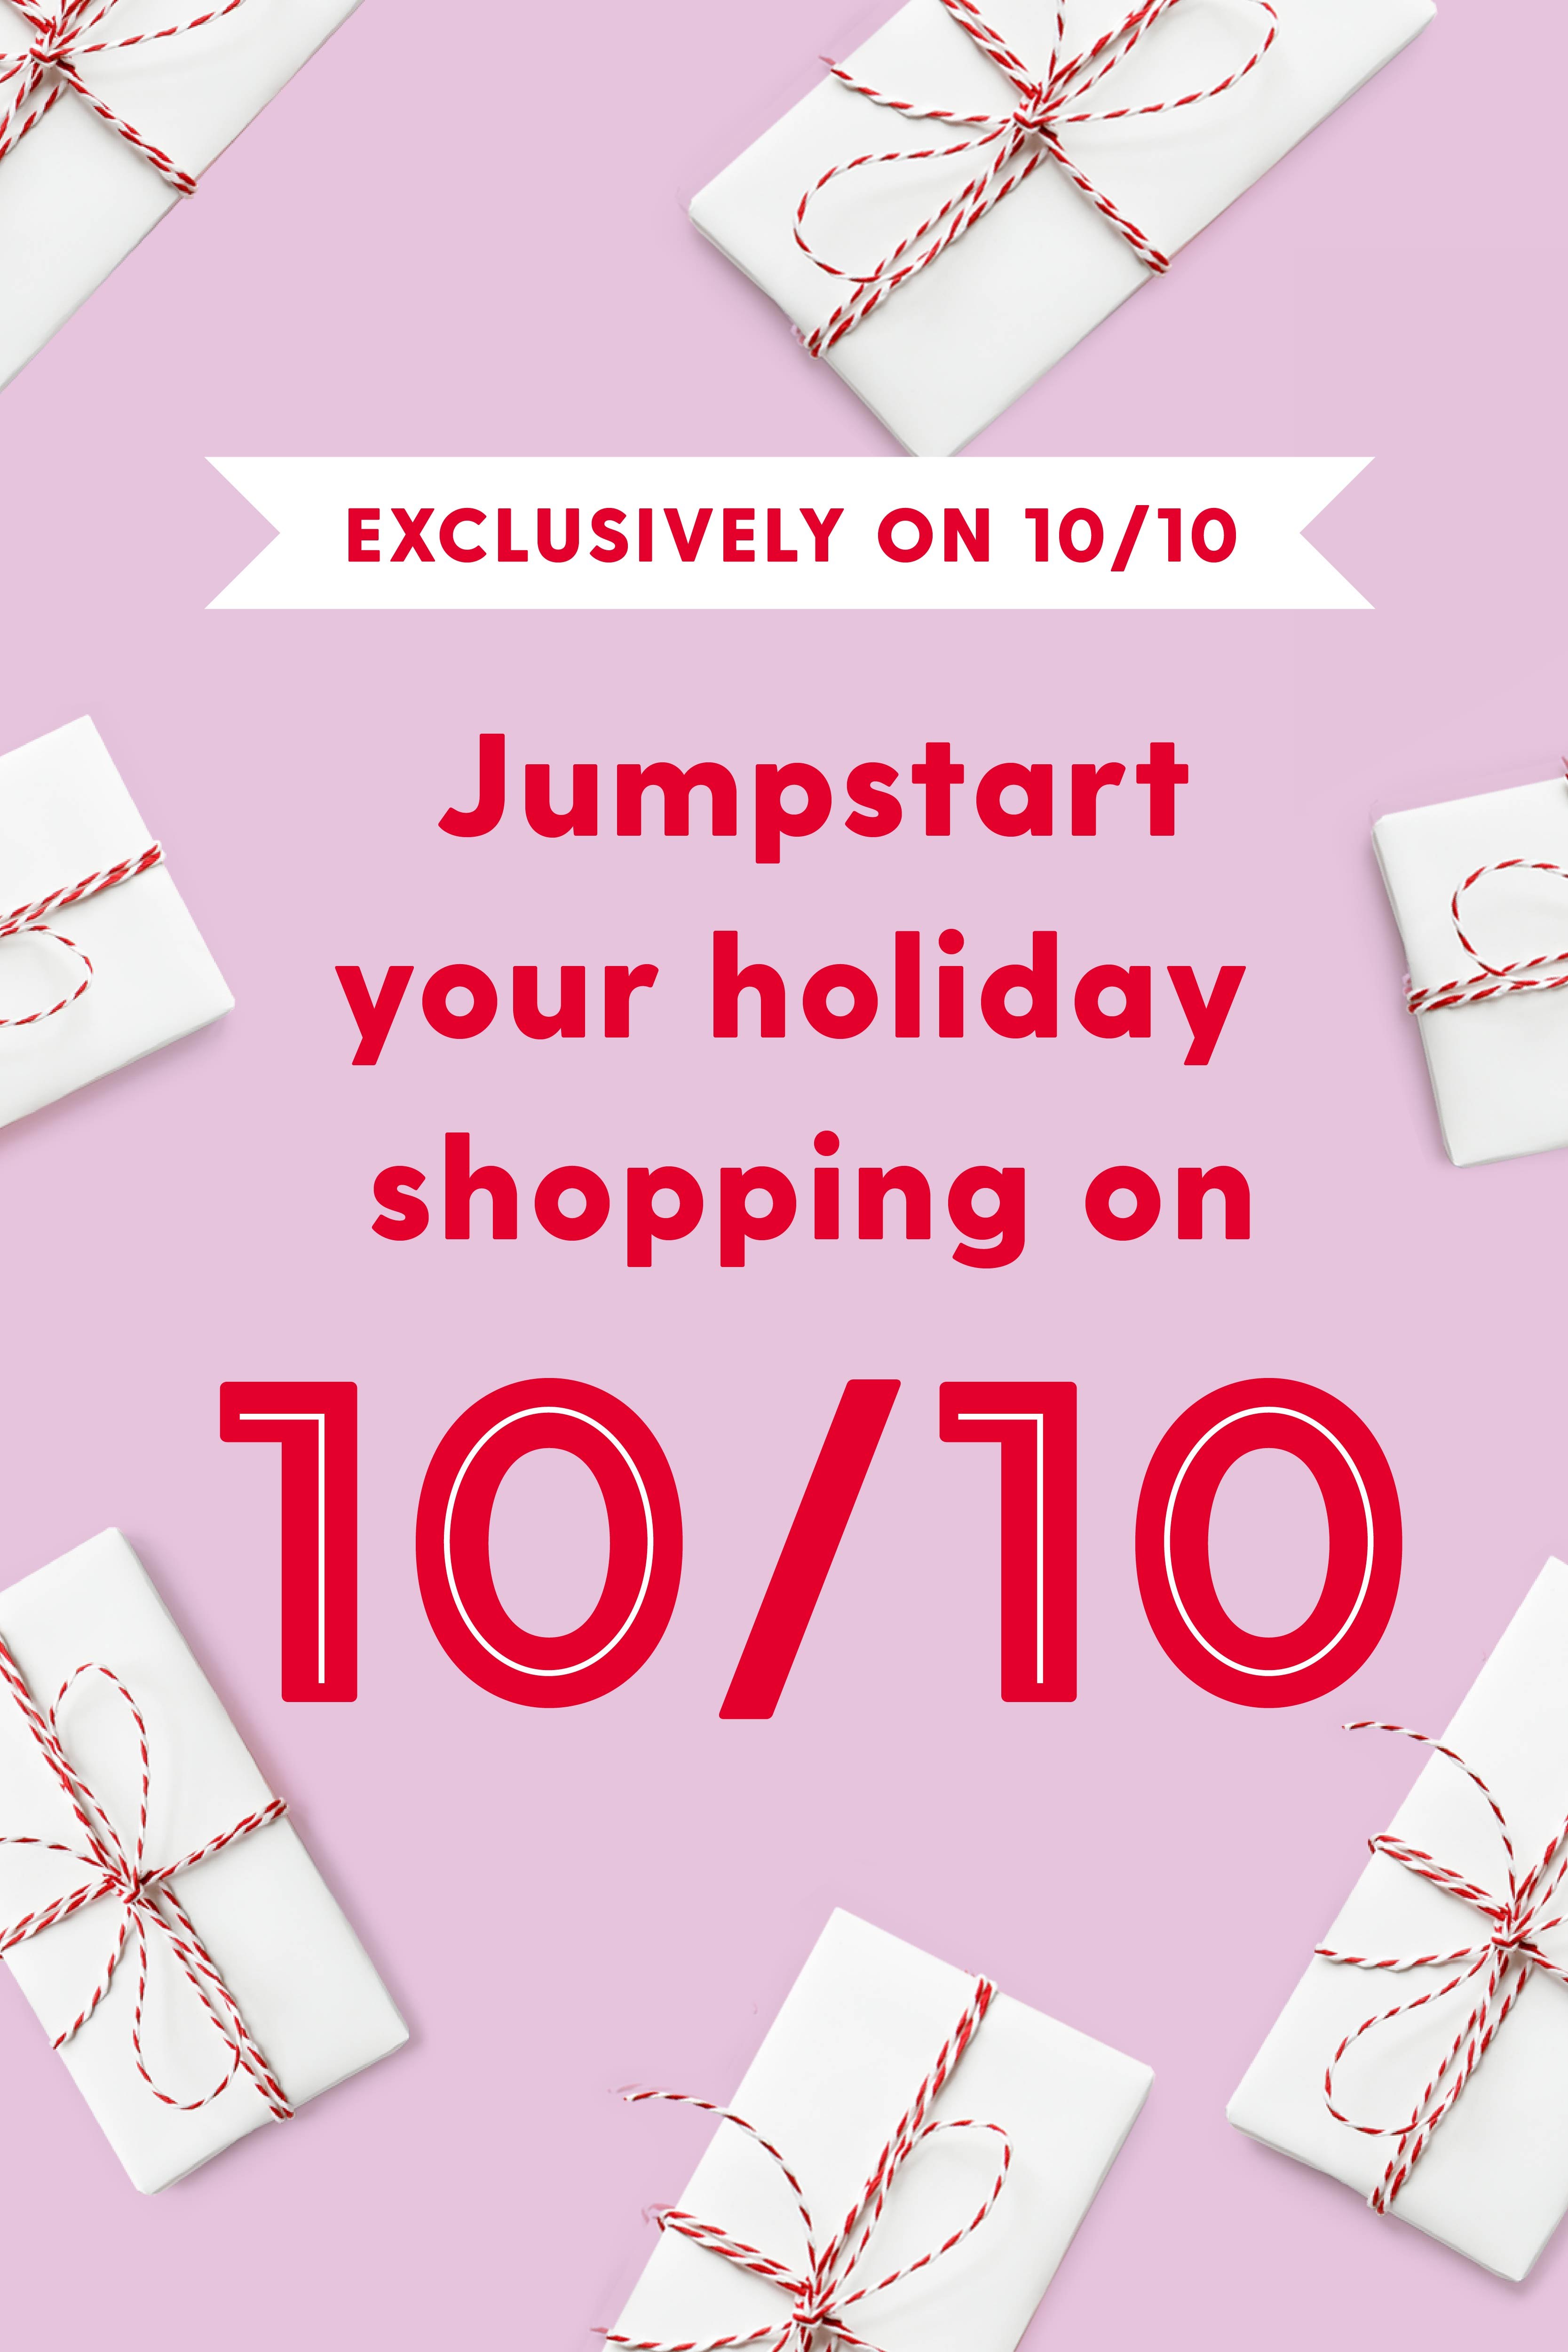 Exclusively on 10/10  Jumpstart your holiday shopping on 10/10